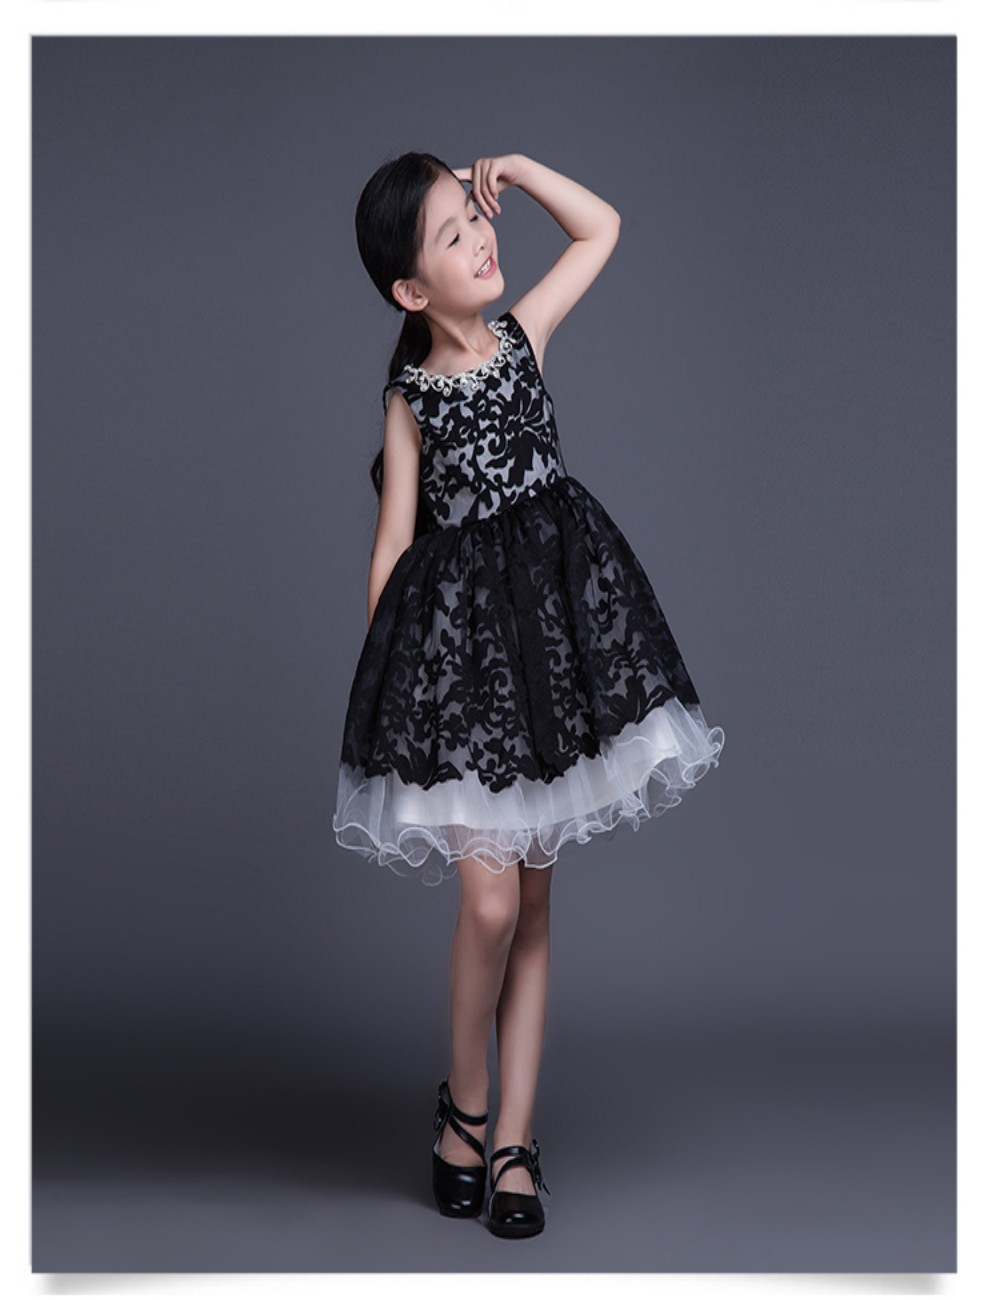 2015 New Style First Communion Dresses For Girls Black White Party Gowns  For Little Kids -in Flower Girl Dresses from Weddings   Events on  Aliexpress.com ... 96c5cdbe0